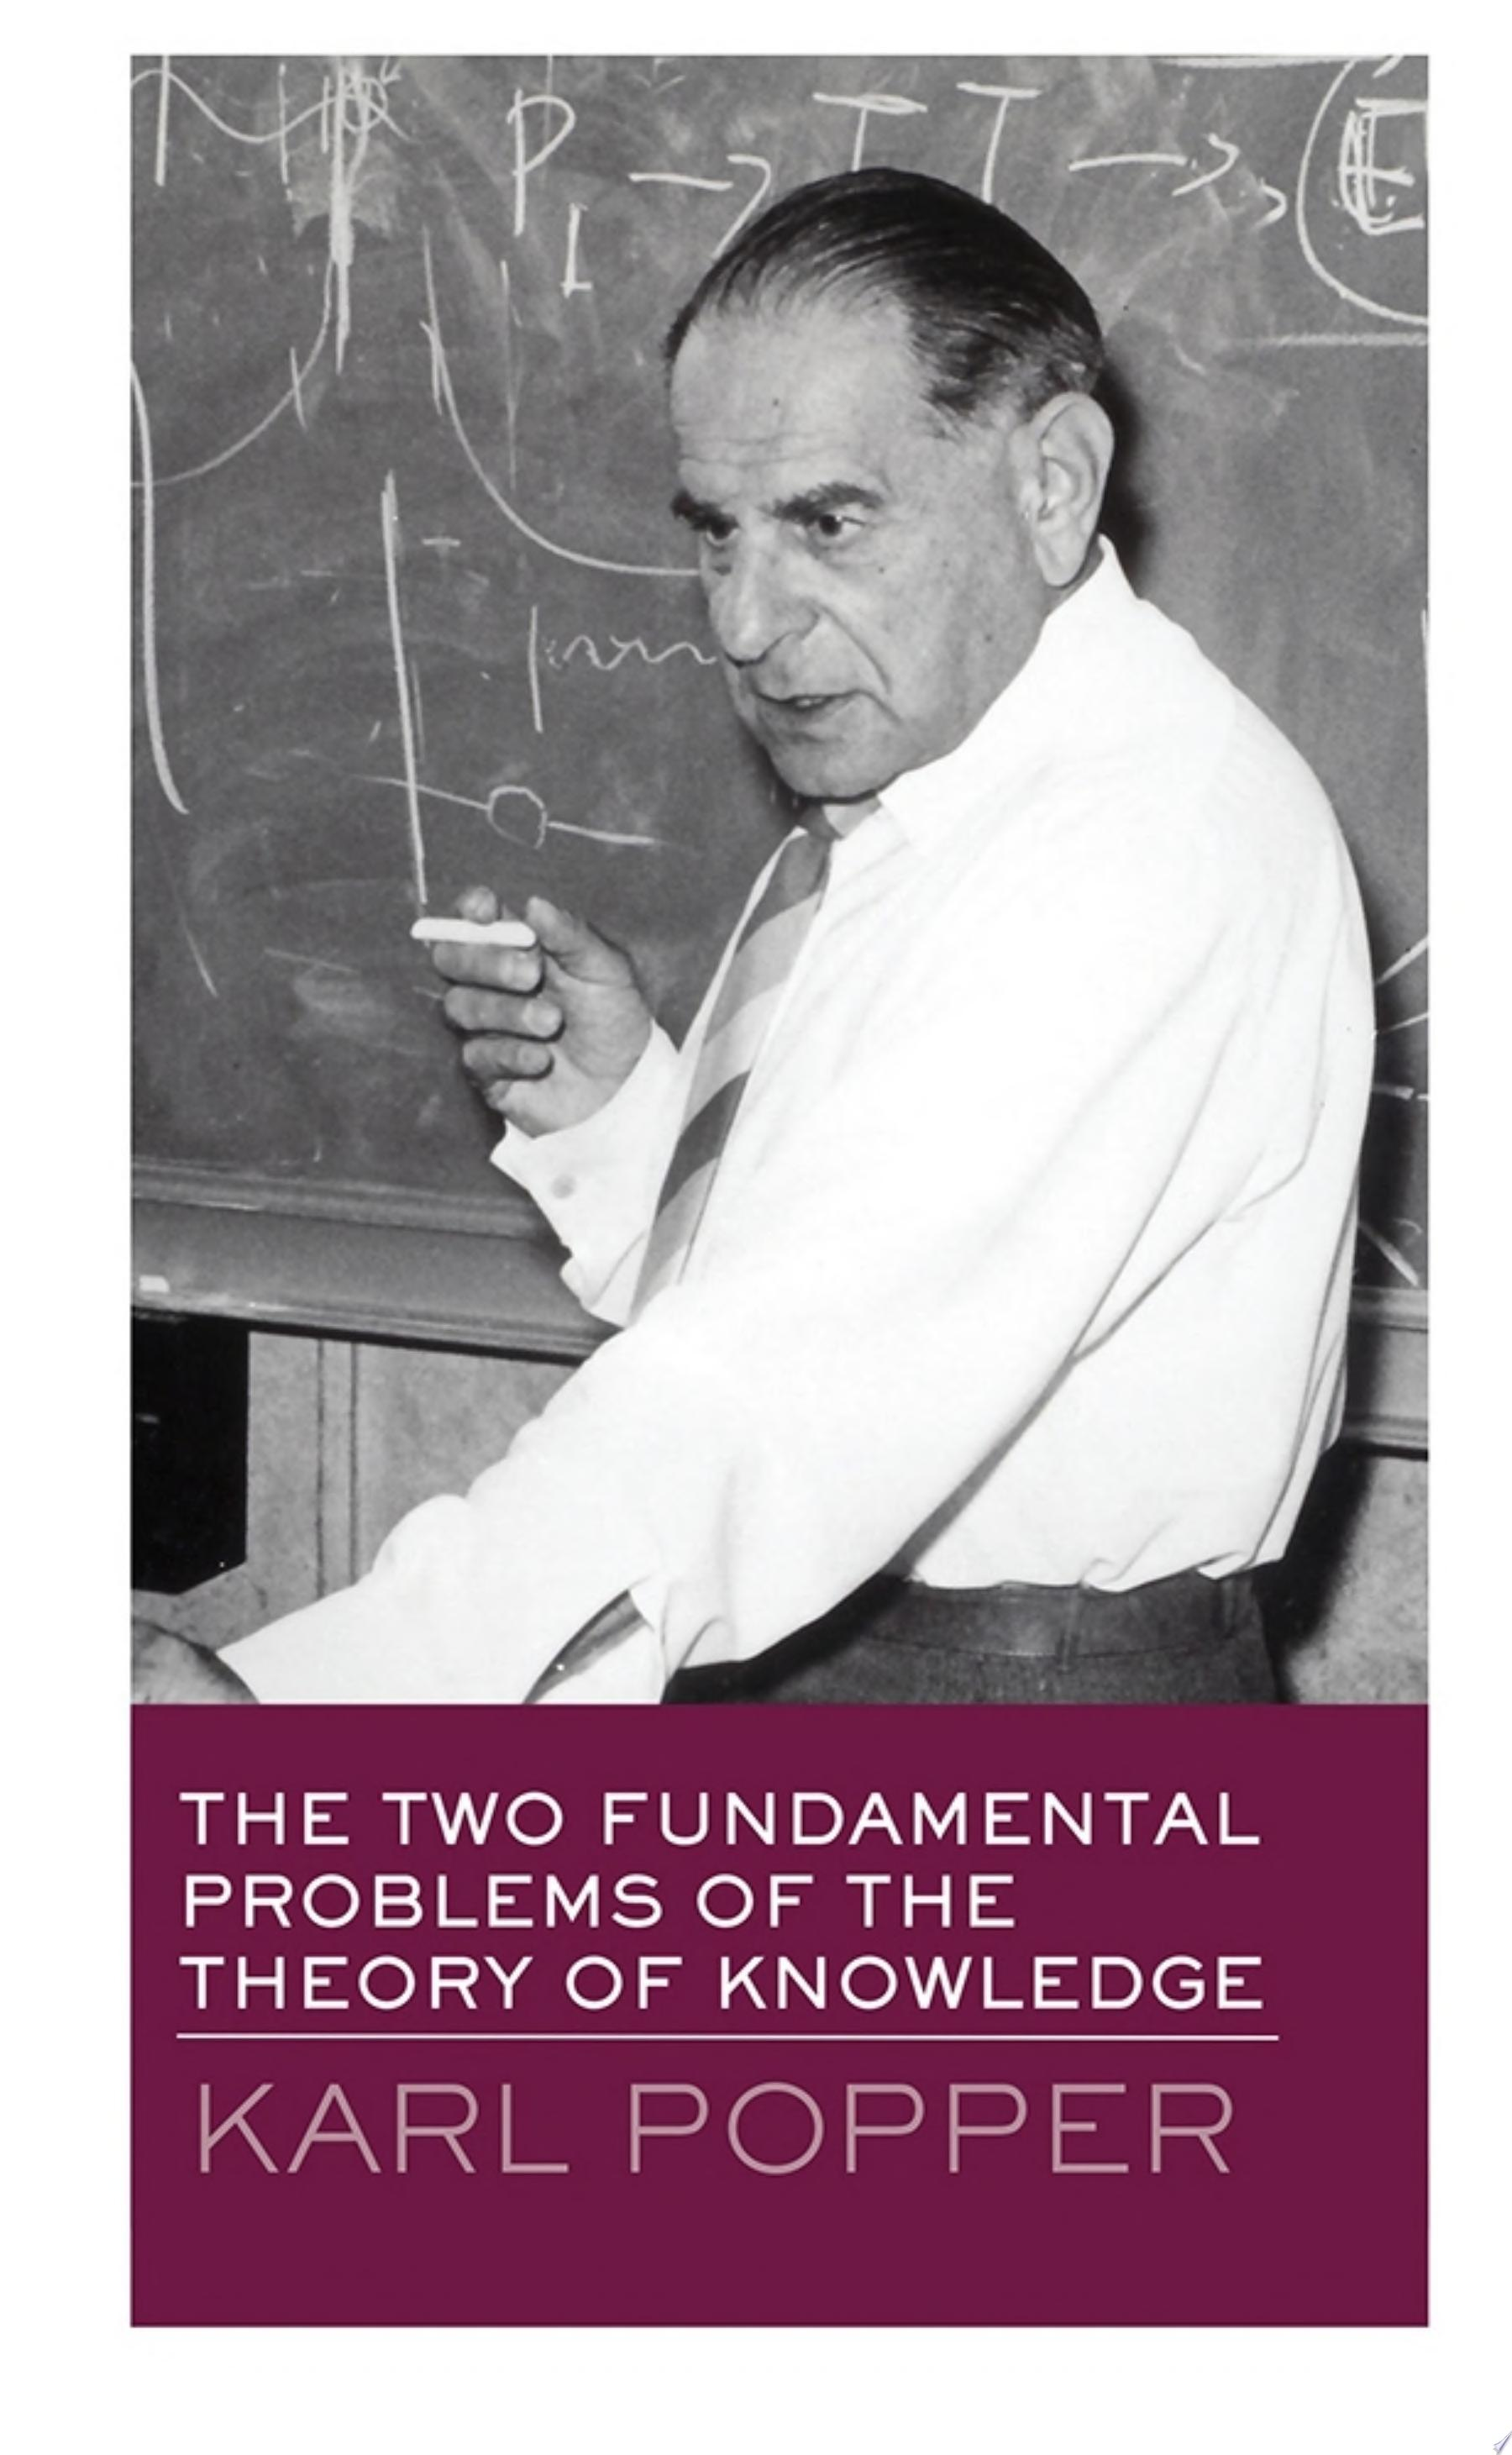 The Two Fundamental Problems of the Theory of Knowledge